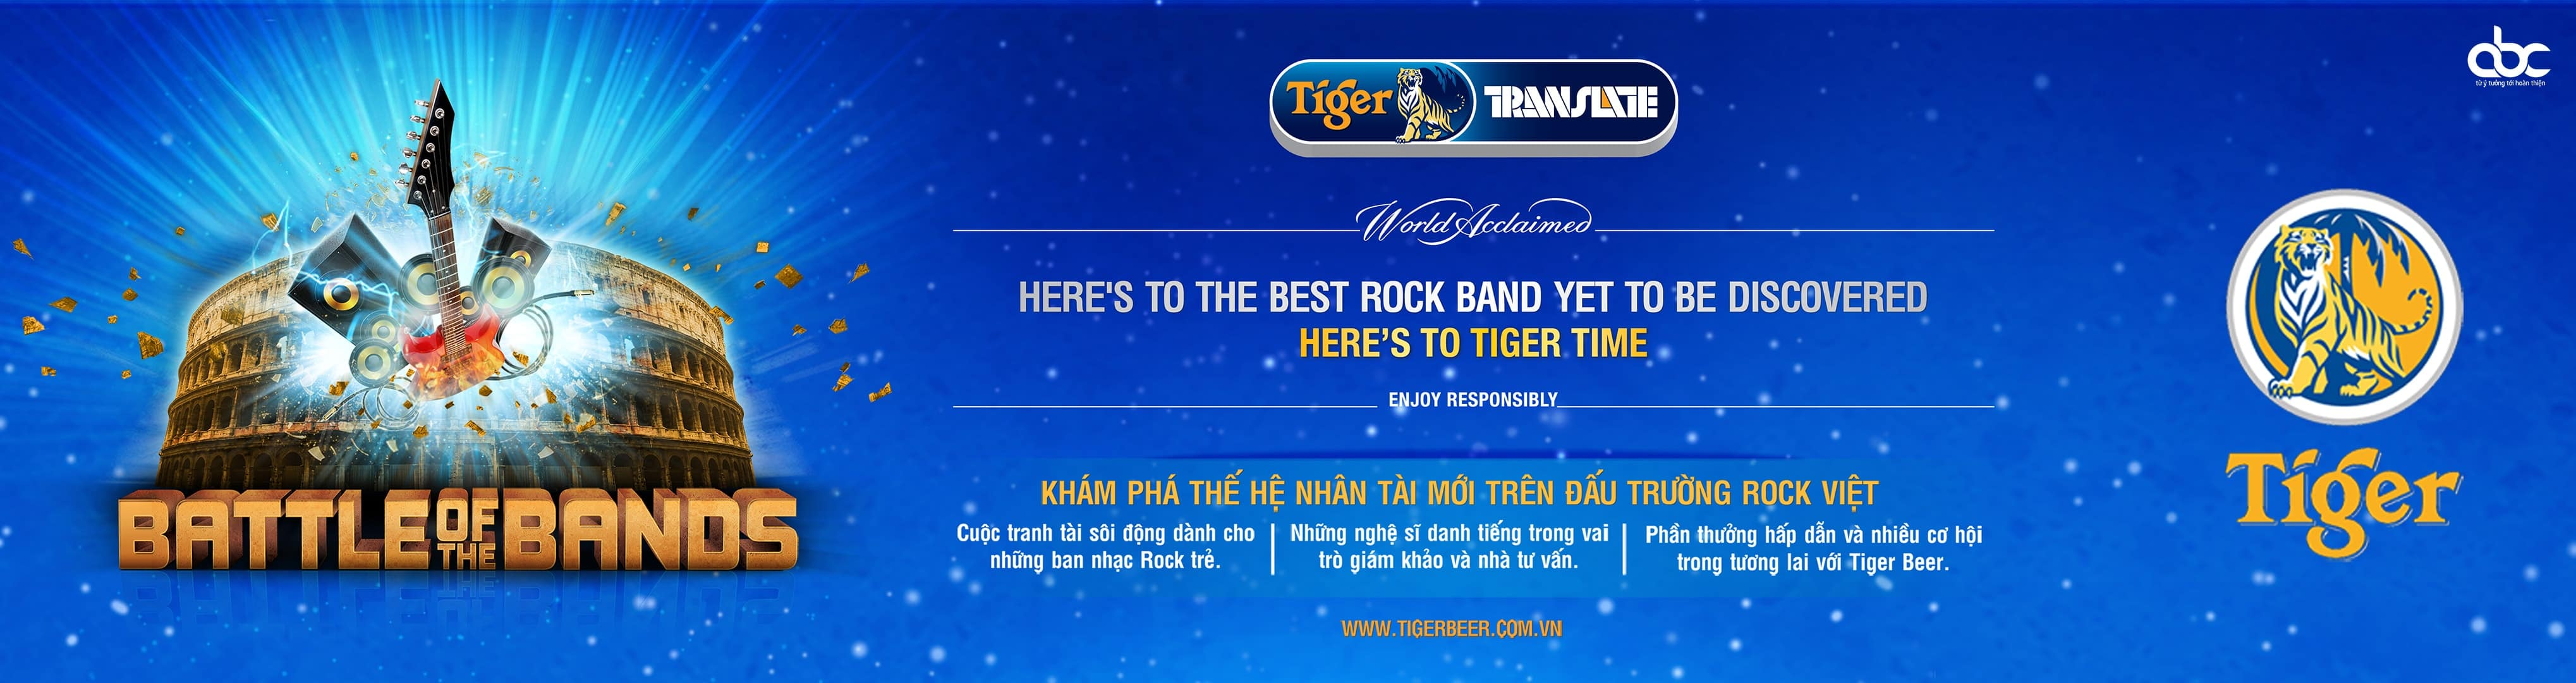 thiet-ke-backdrop-su-kien-tiger-translate-2